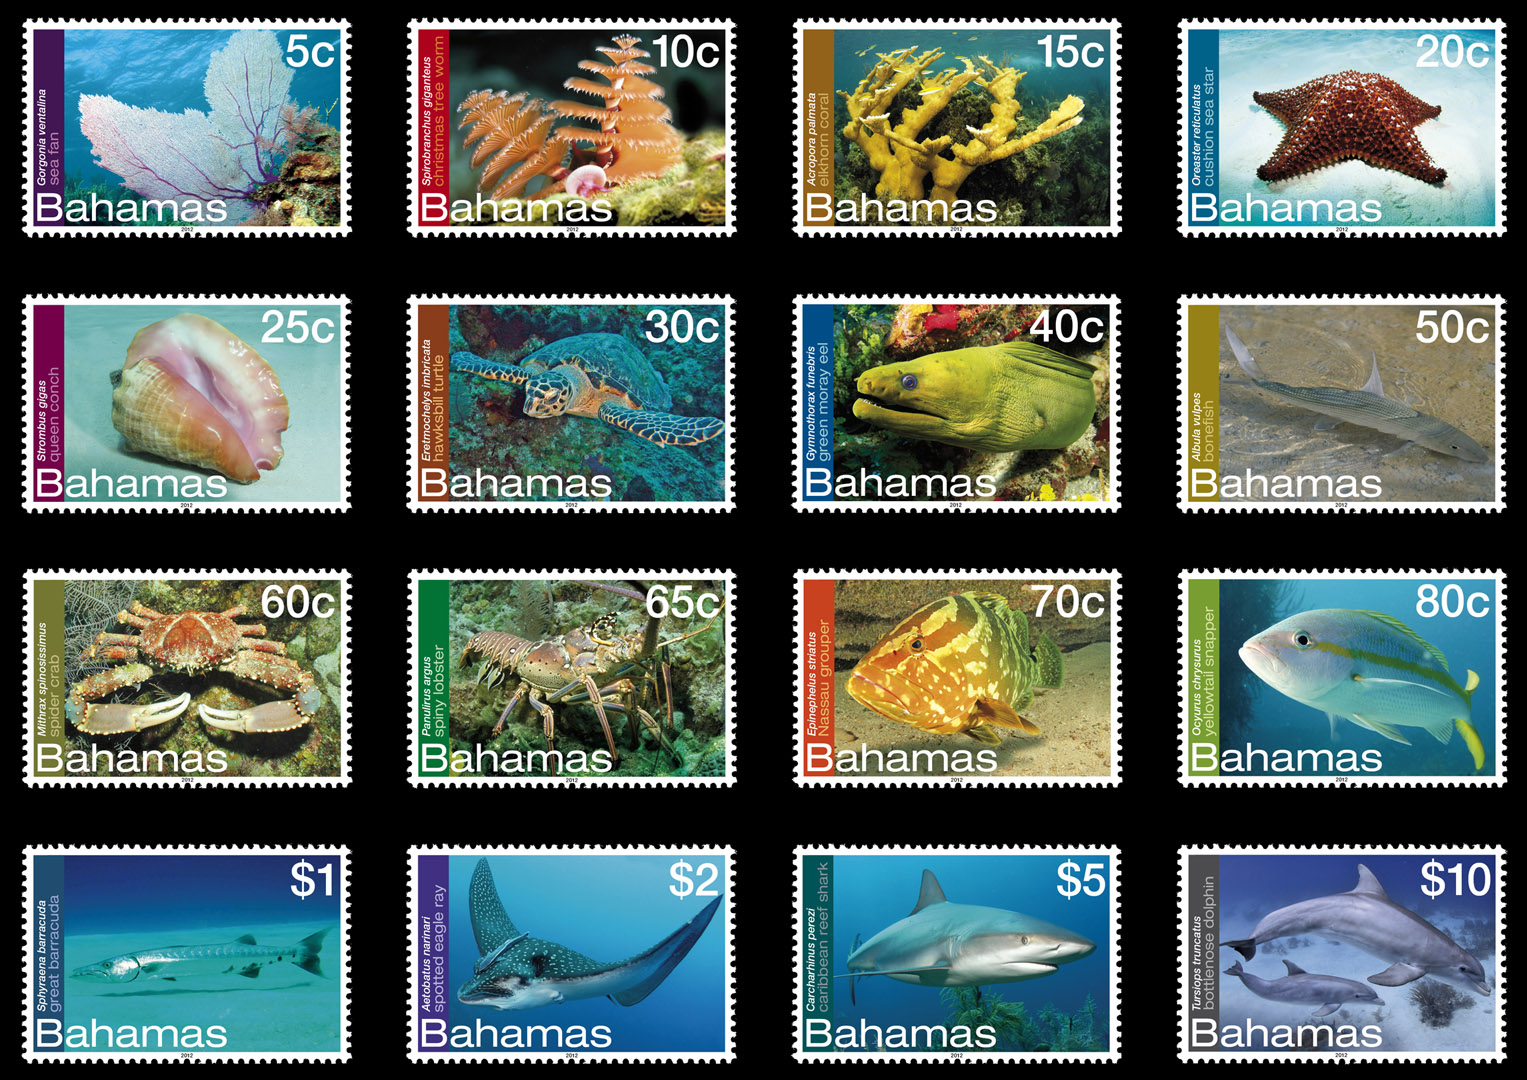 Post office releases new stamps that depicts Bahamas